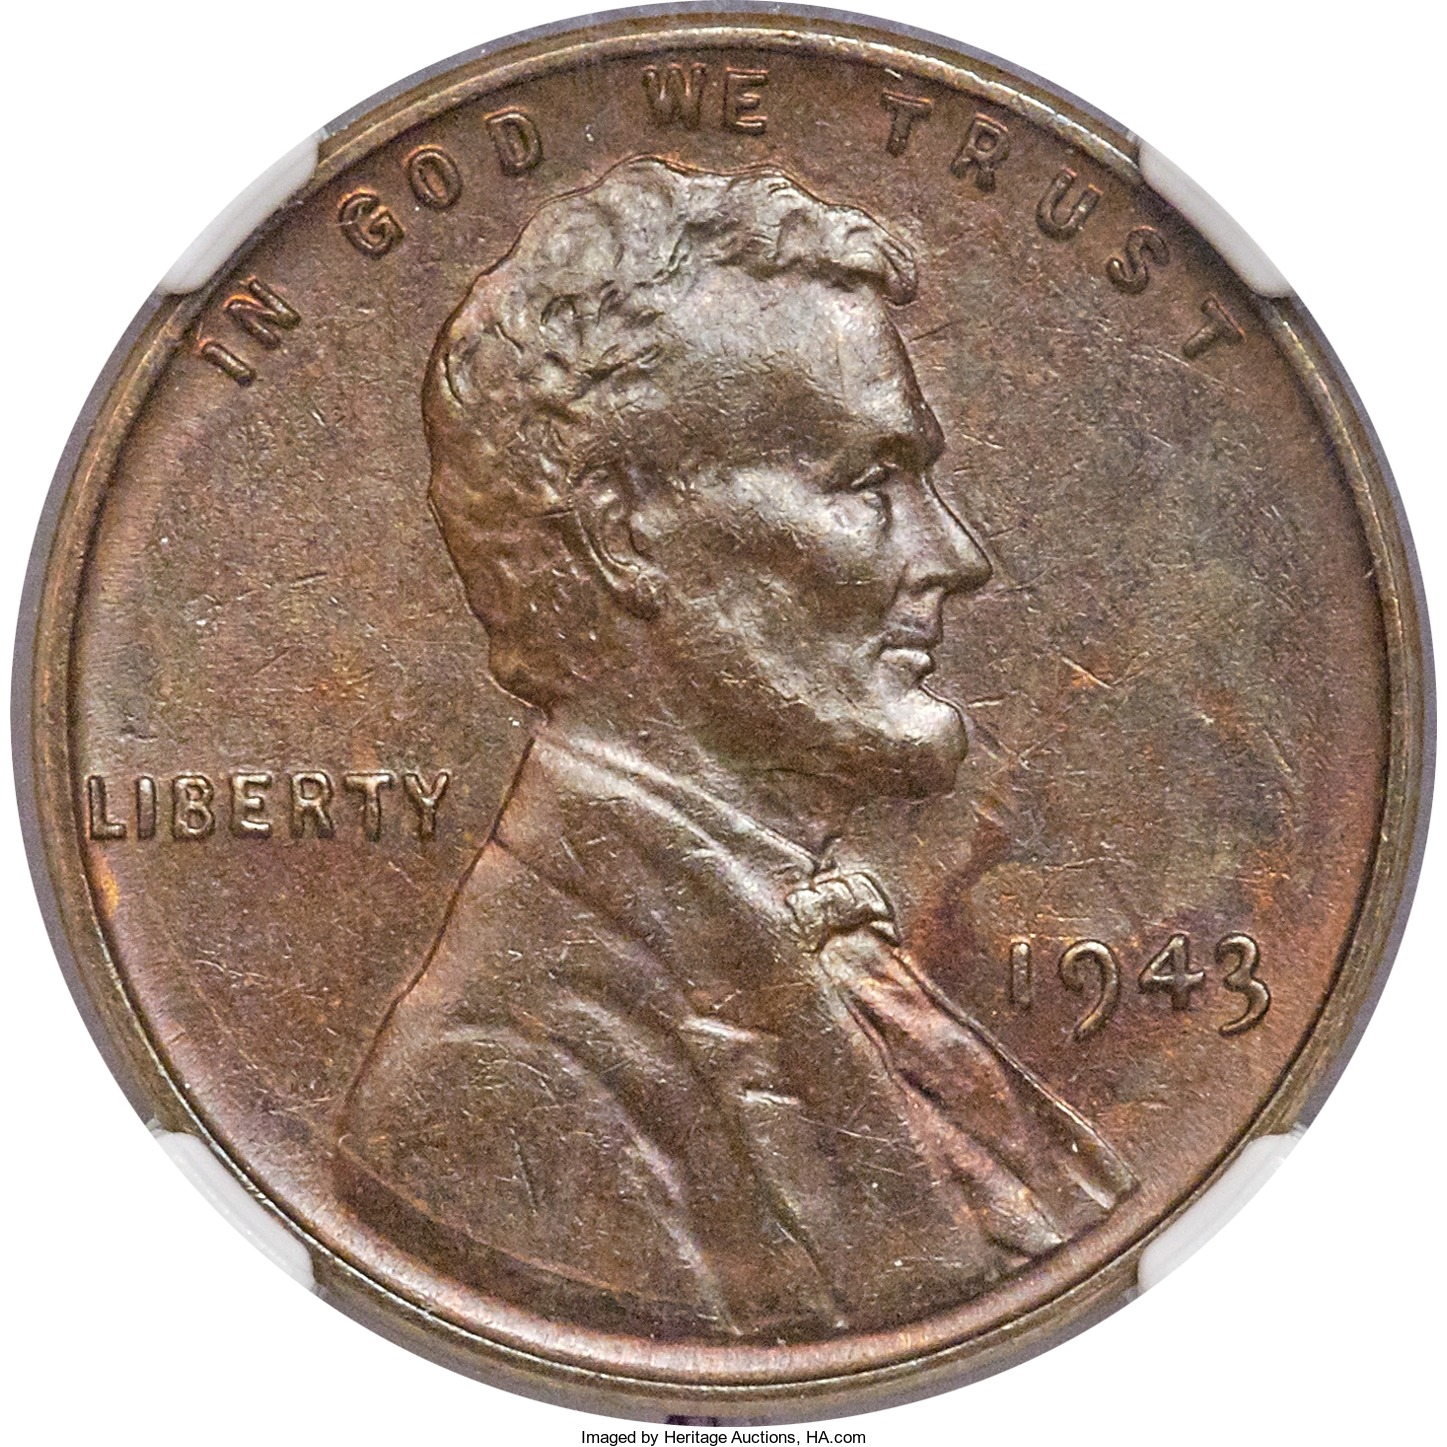 Rare 1943 Copper Wheat Ear Cent Sold for $282 000 – World Numismatic